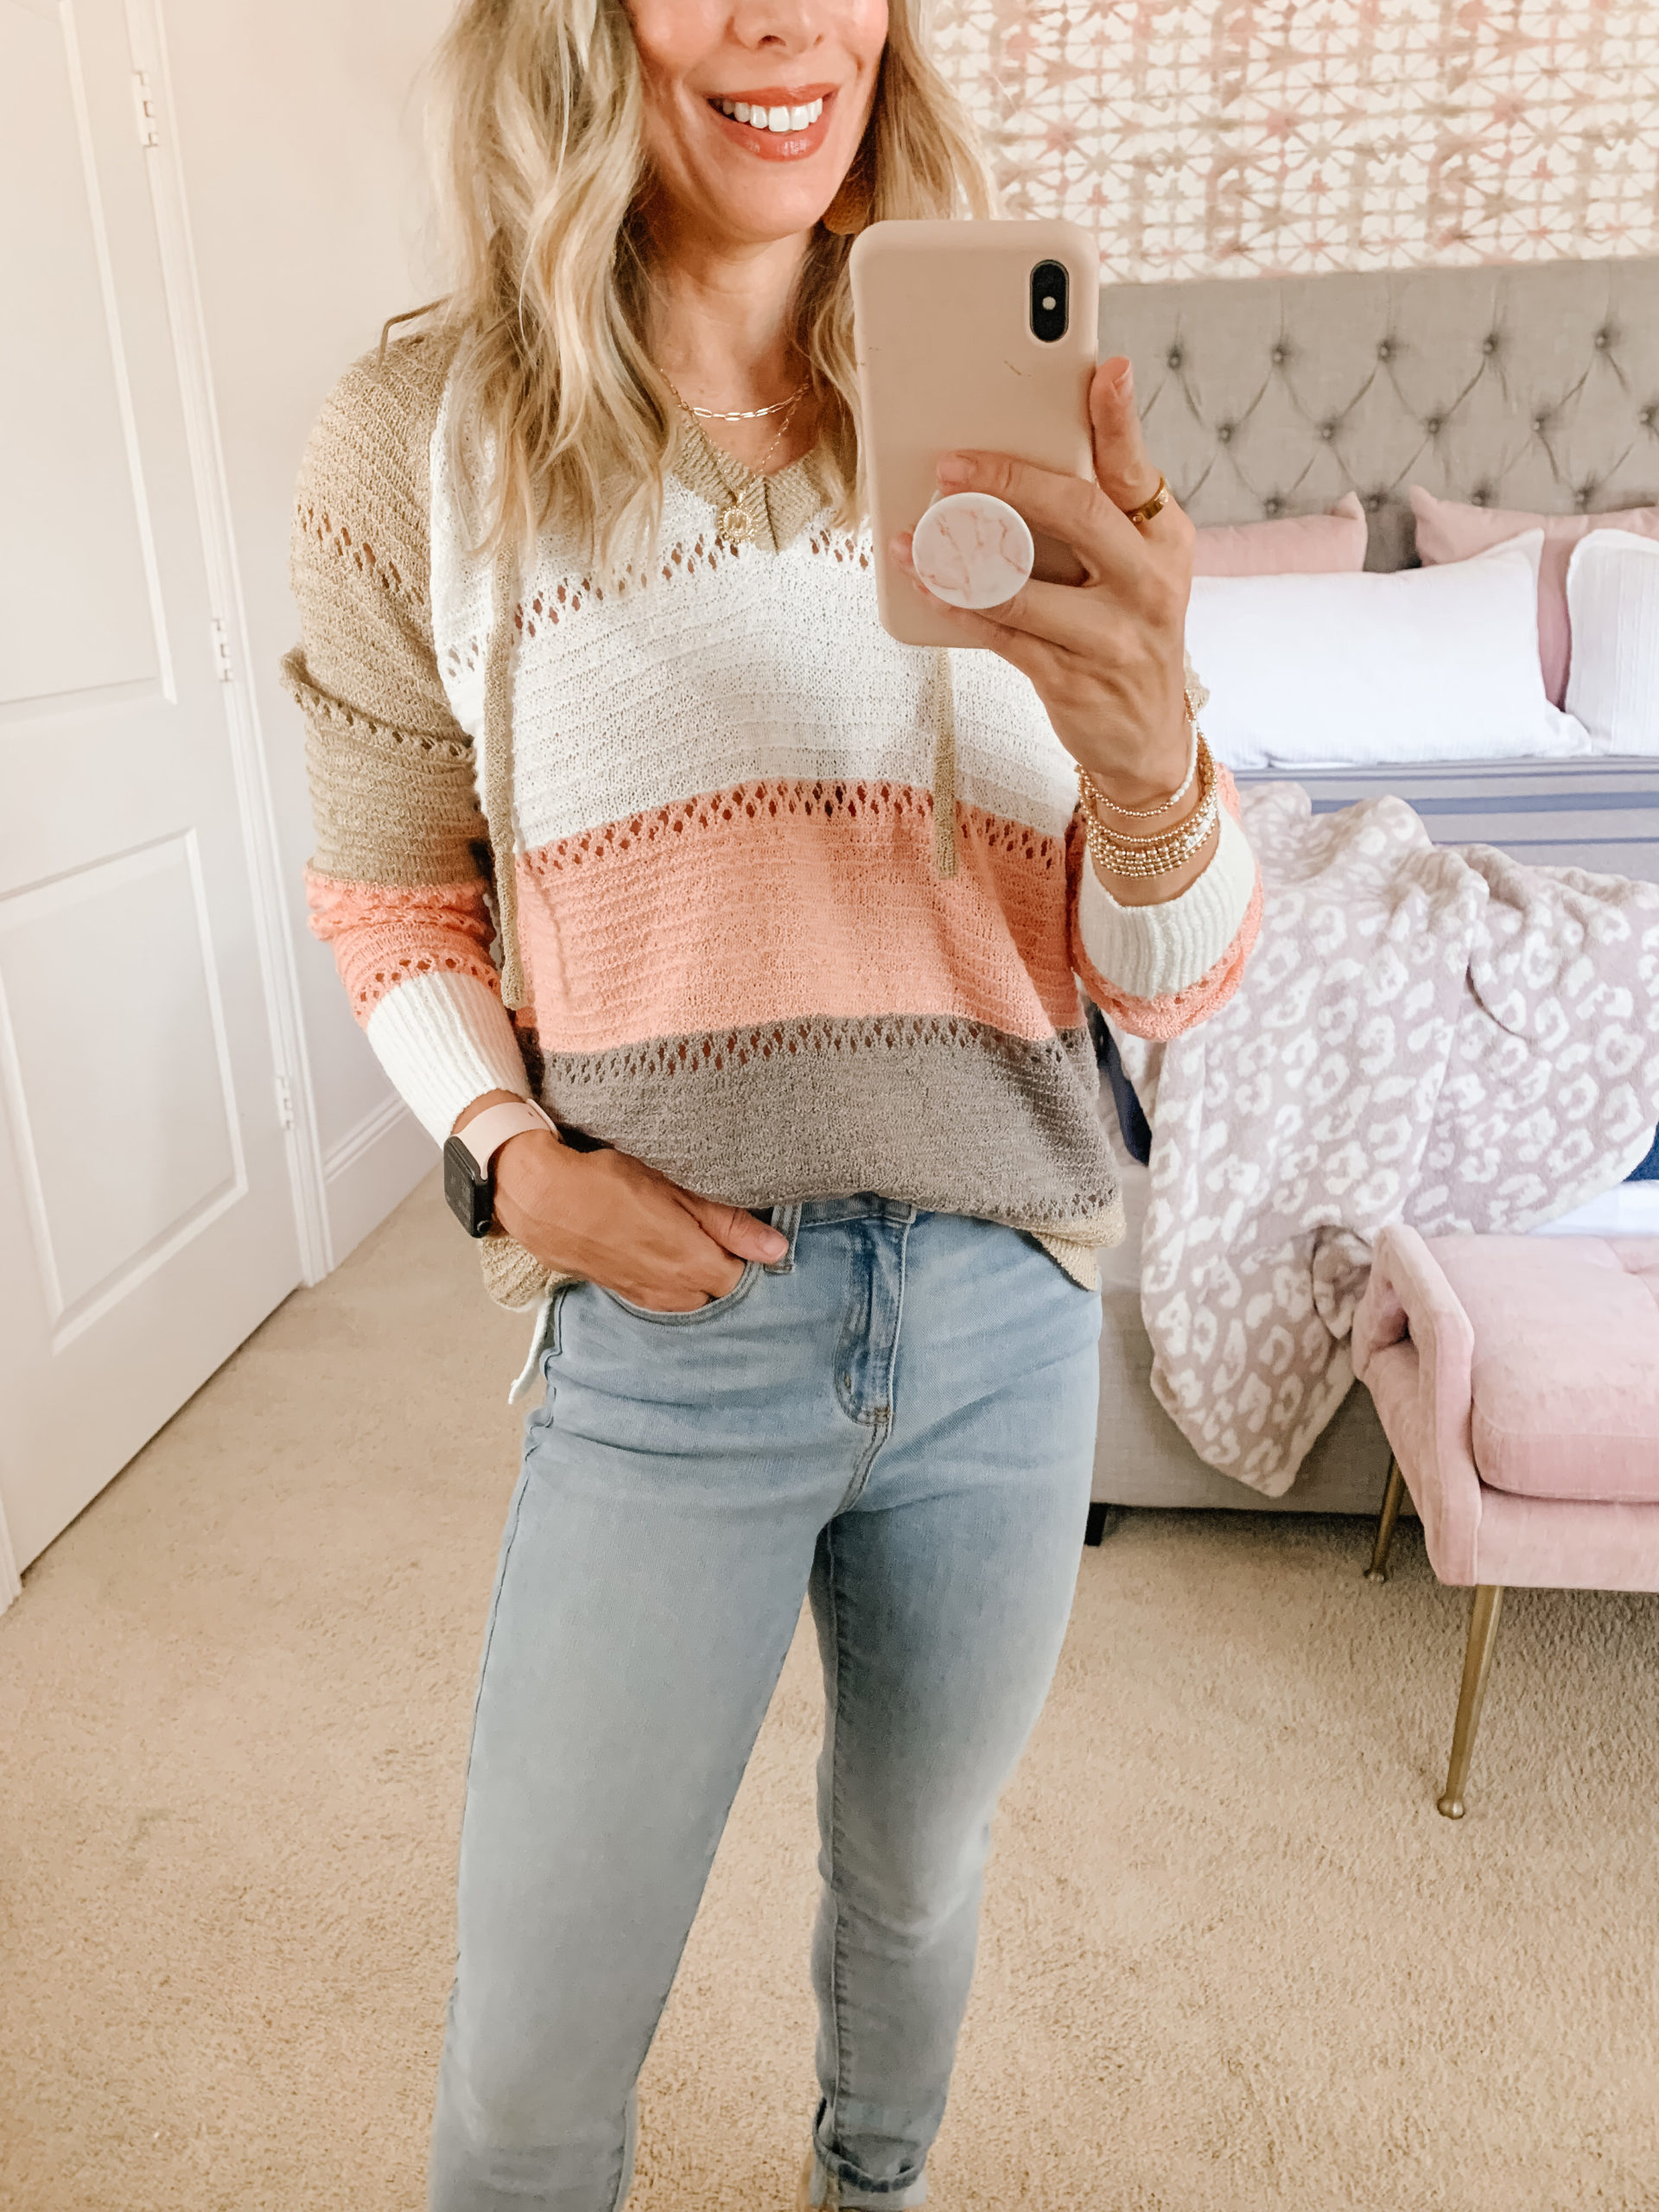 Amazon Fashion, Colorblock Sweater, Jeans, Booties